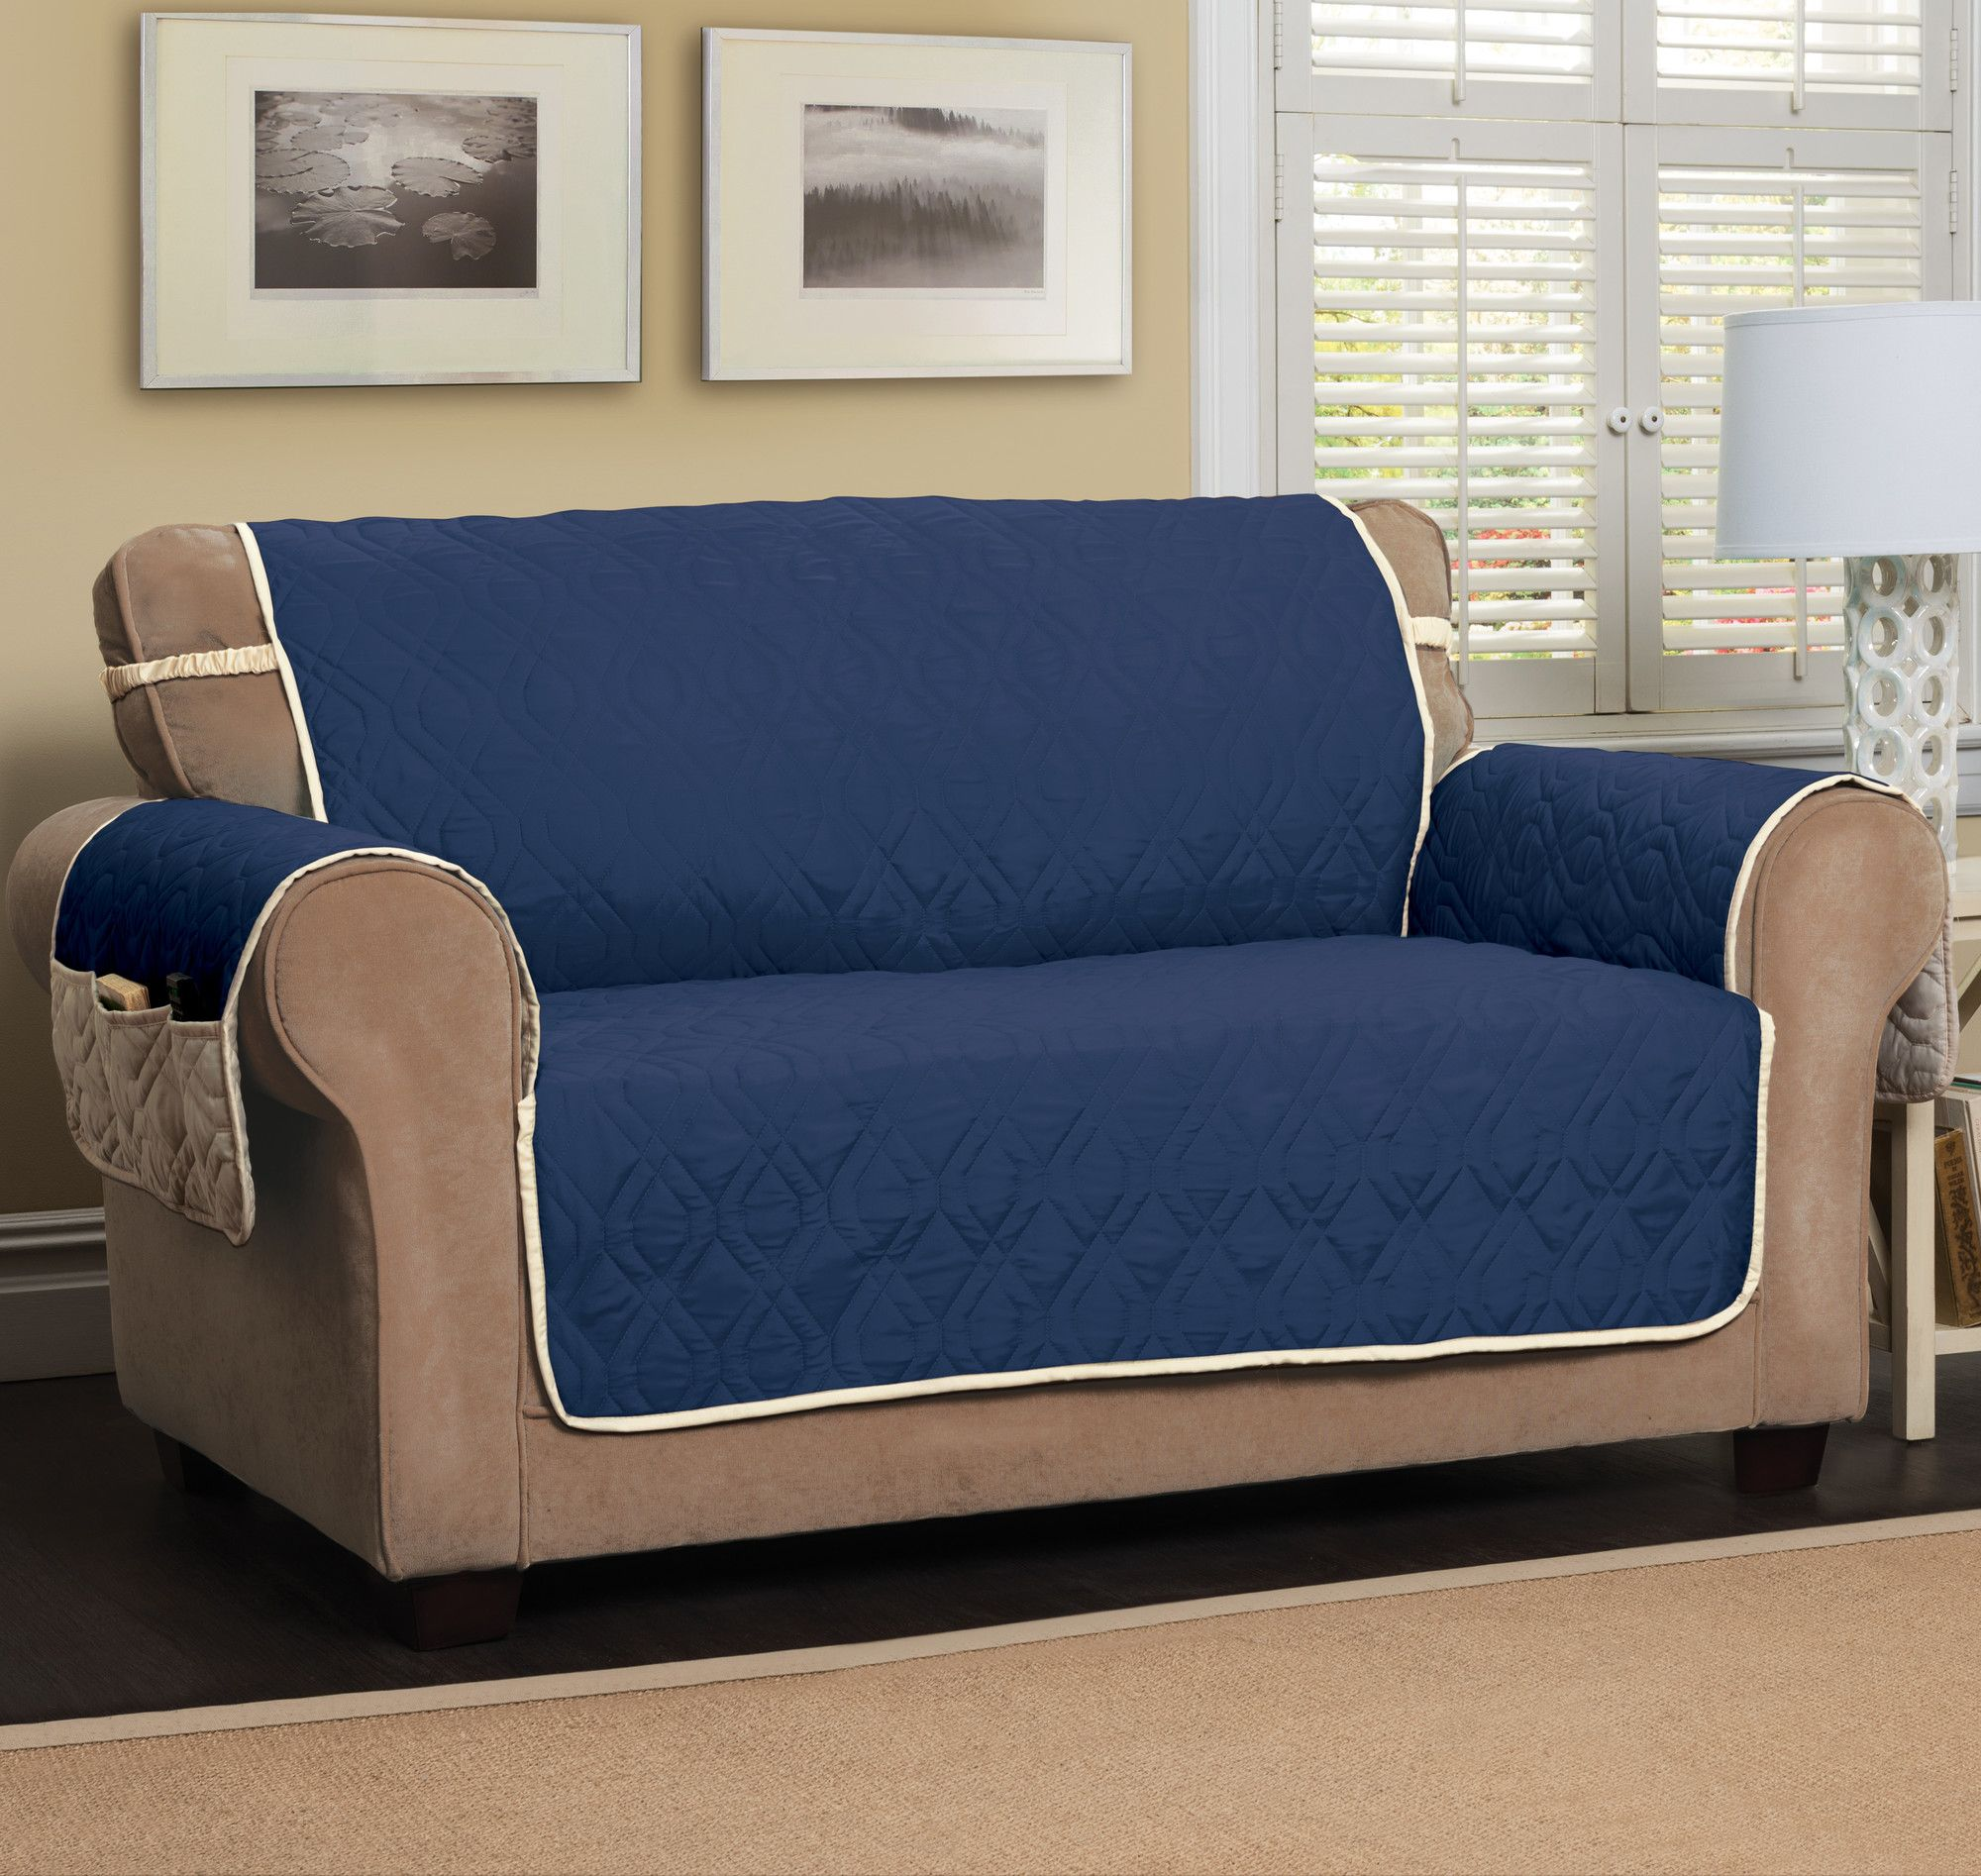 Five Star Furniture Protector Sofa Slipcover